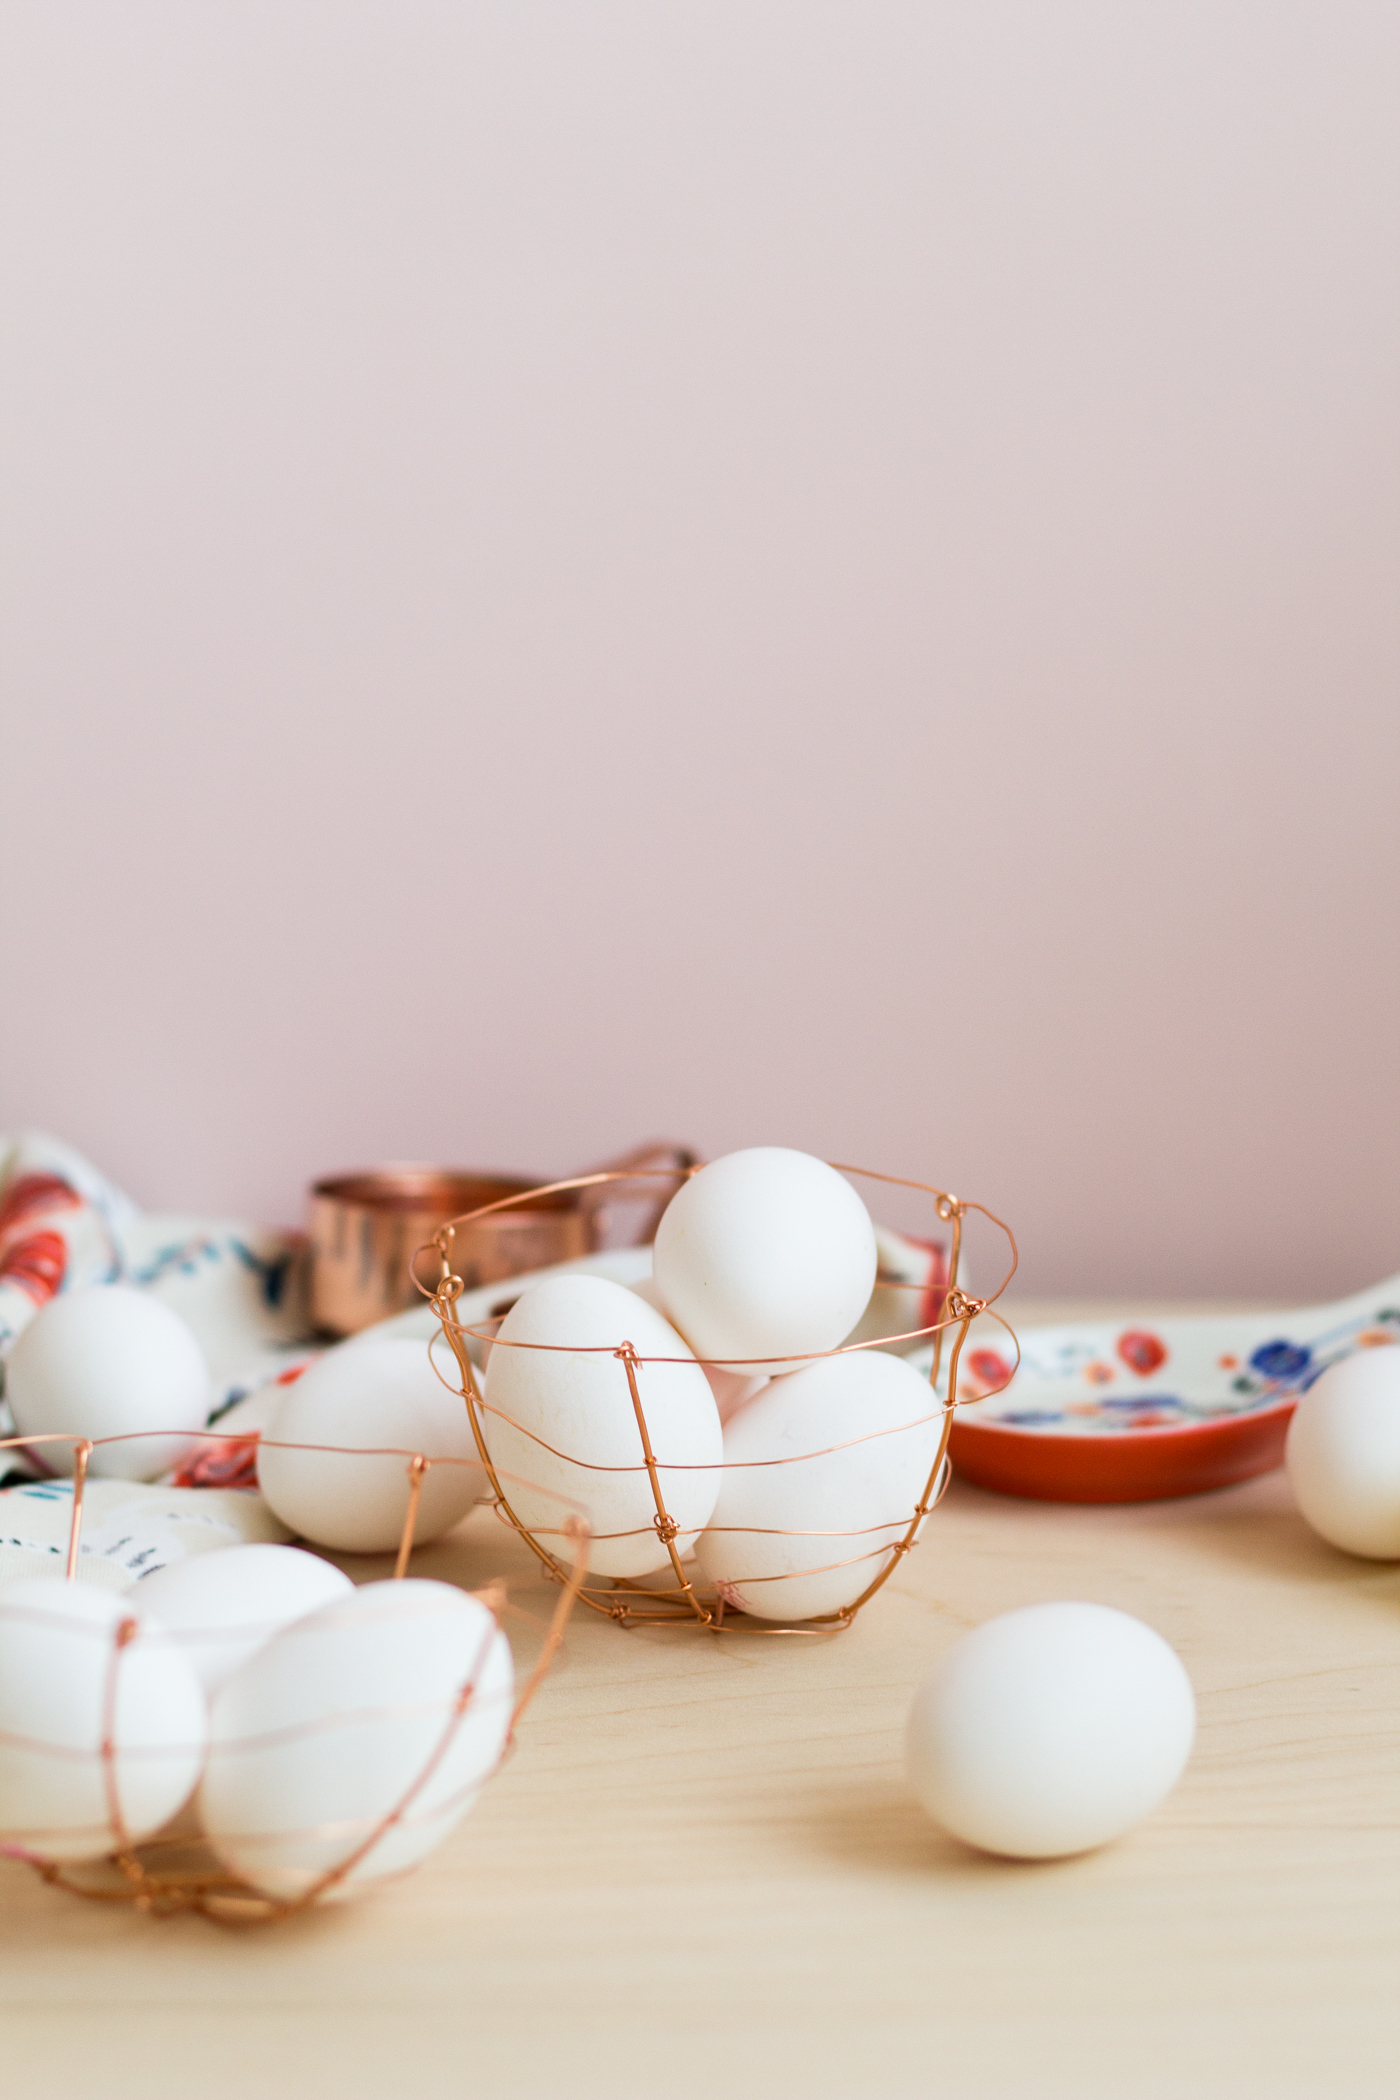 DIY Copper Wire Easter Egg Baskets | @fallfordiy